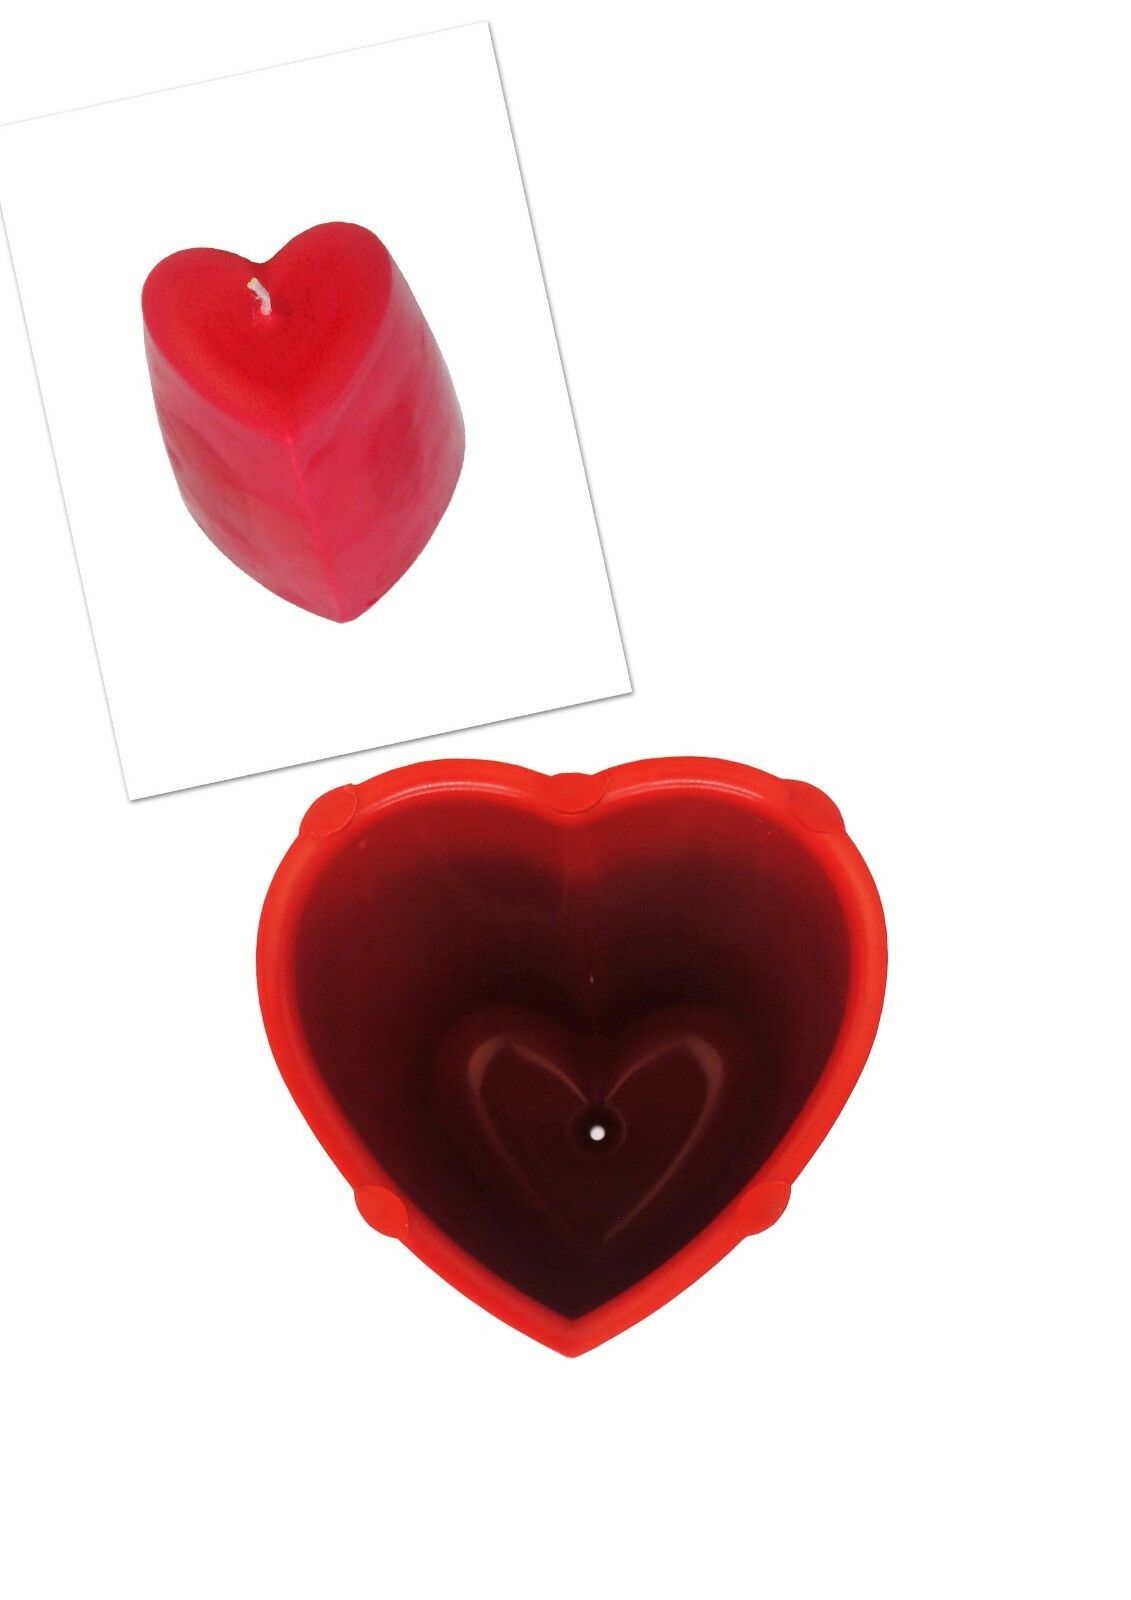 Crafts Candle Moulds Valentine Heart Shaped Mold & Pentagon Pillar Candle Making Mould S7734 Set x 2